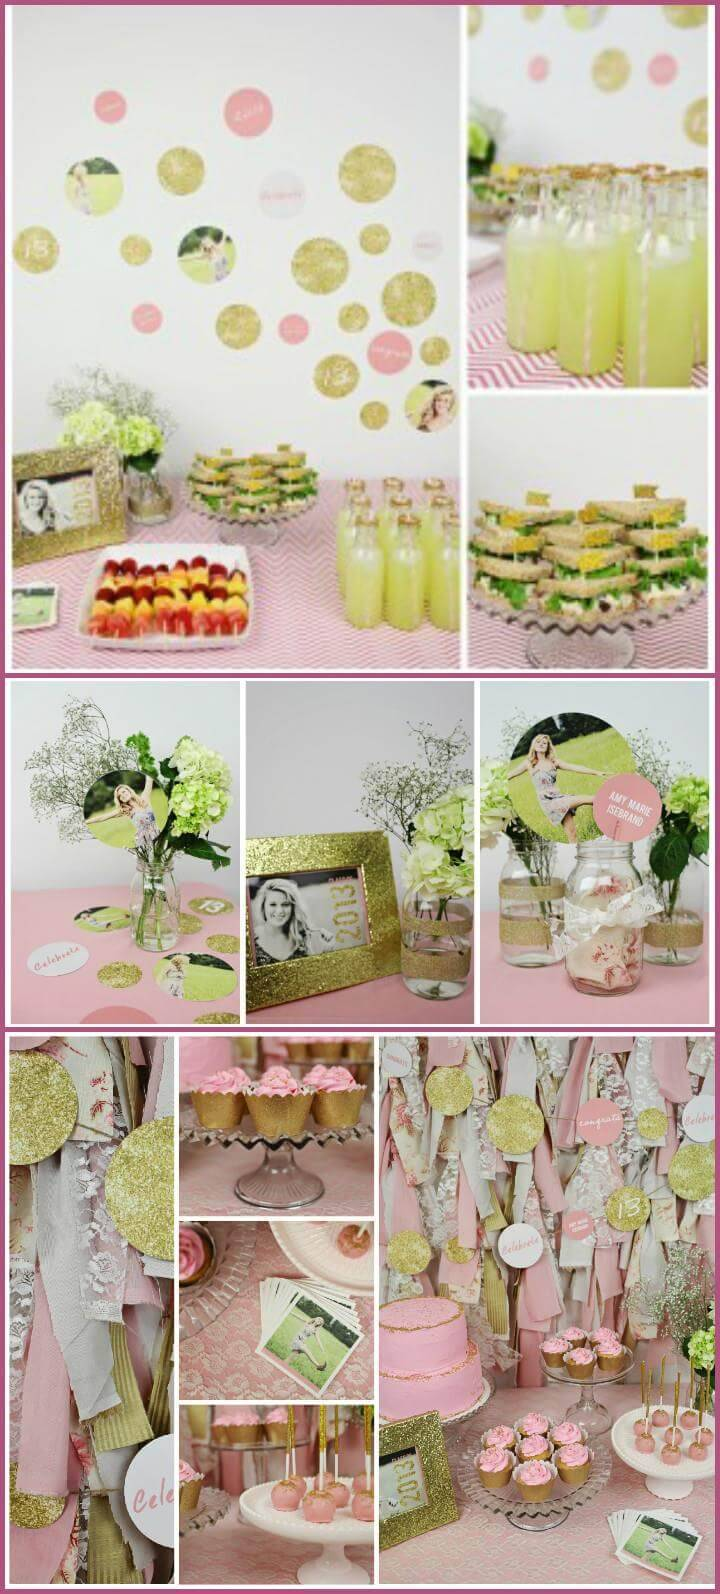 50+ DIY Graduation Party Ideas & Decorations - DIY & Crafts